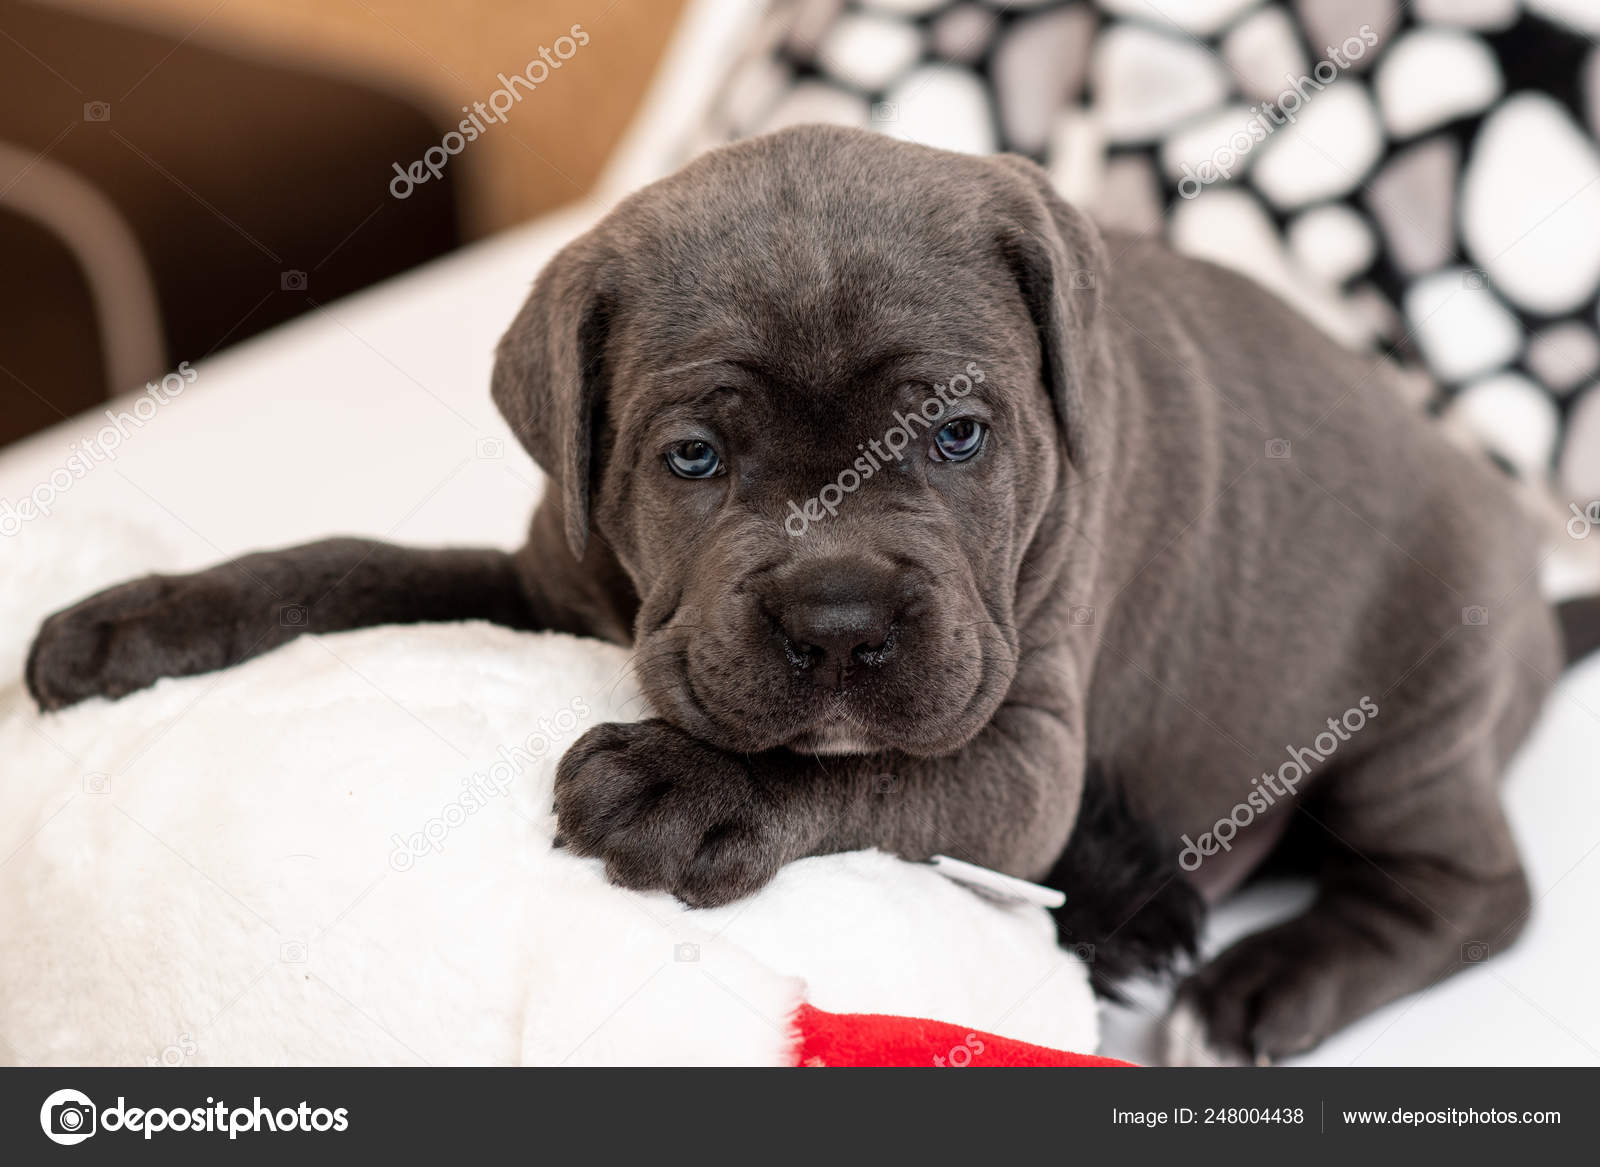 Puppy Breed Cane Corso Lies On A Light Pillow Stock Photo C Bondarjuri232 Gmail Com 248004438